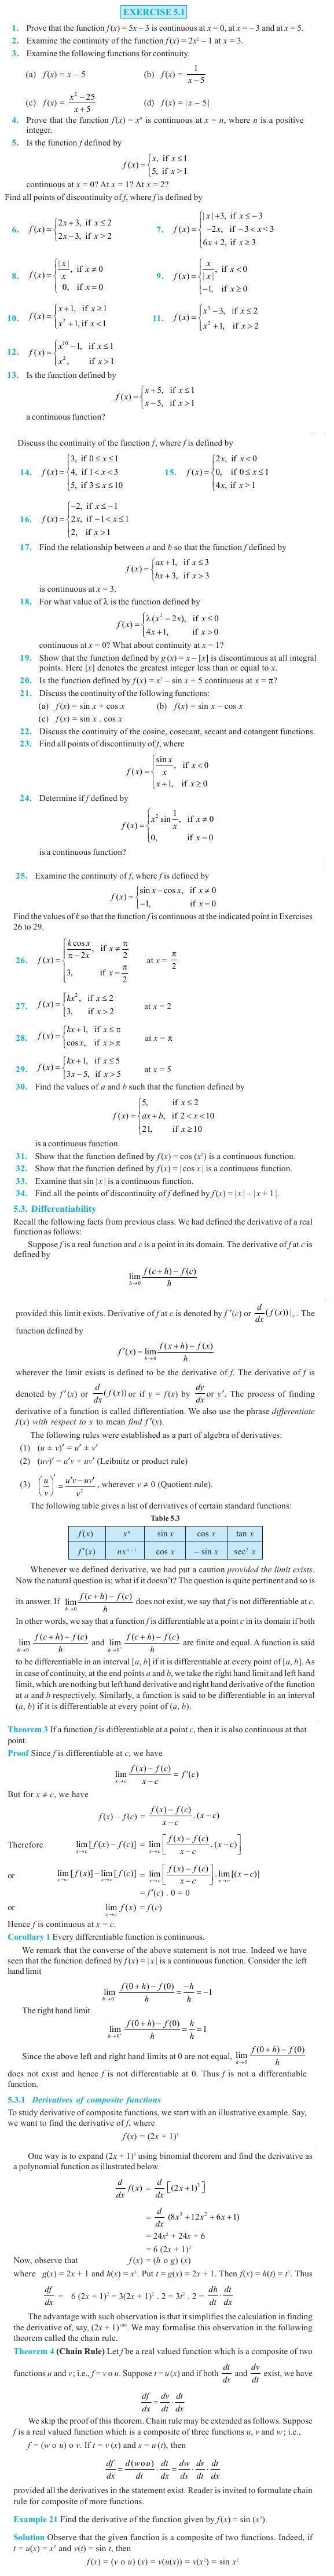 NCERT Class XII Maths Chapter 5 - Continuity and Differentiability